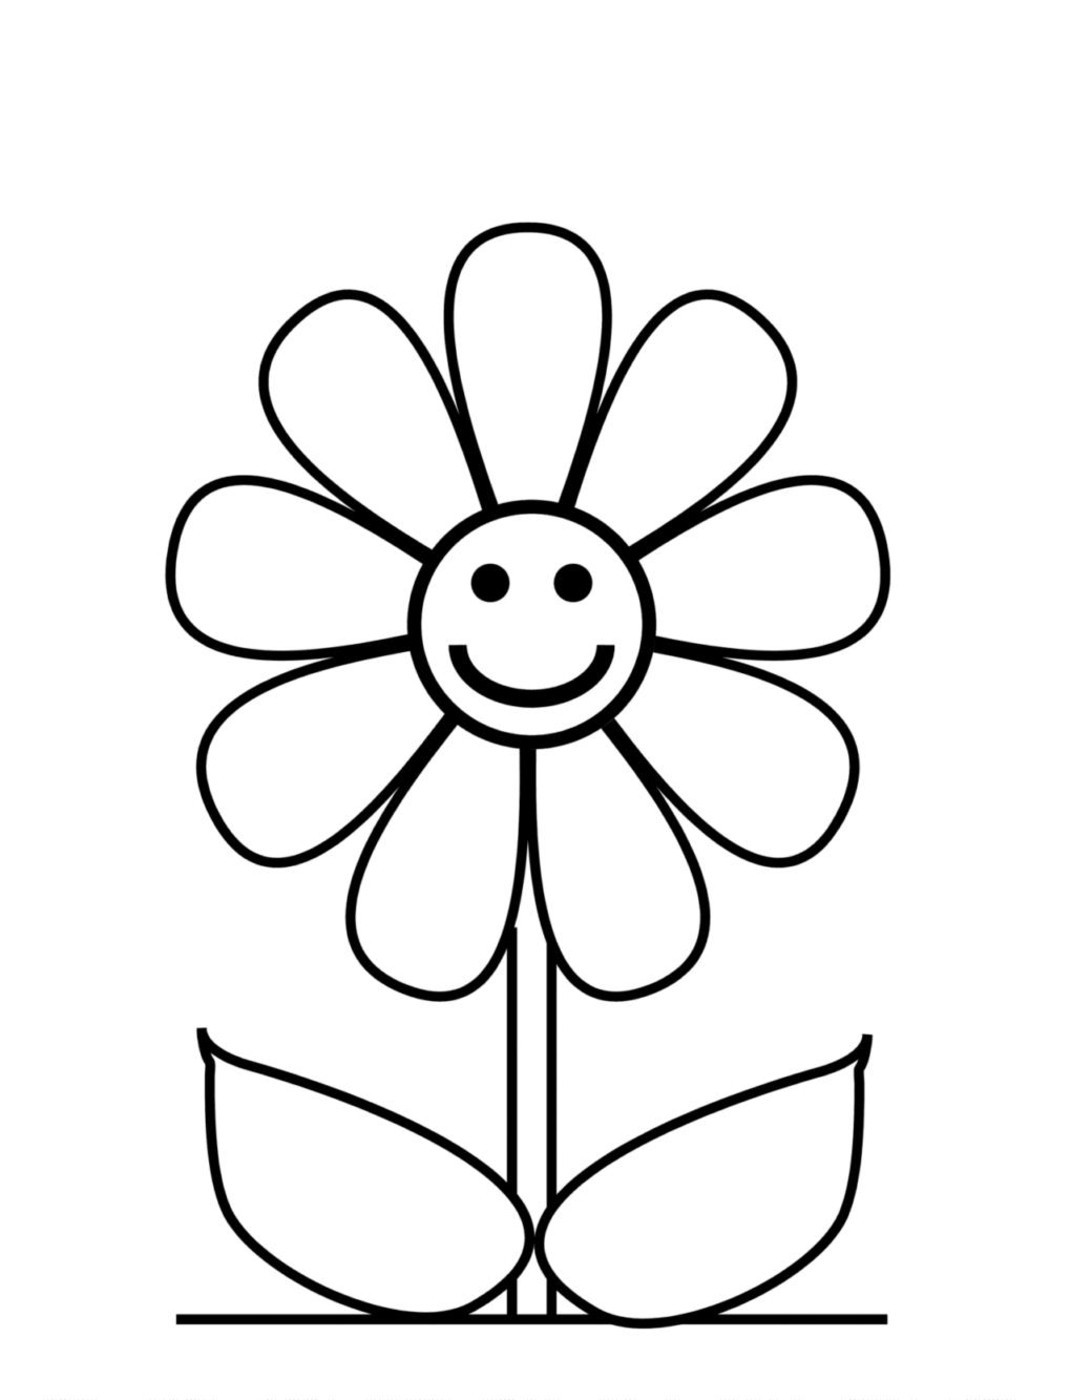 1071x1400 Luxury Outline Of A Flower To Color Coloring Pages Activities